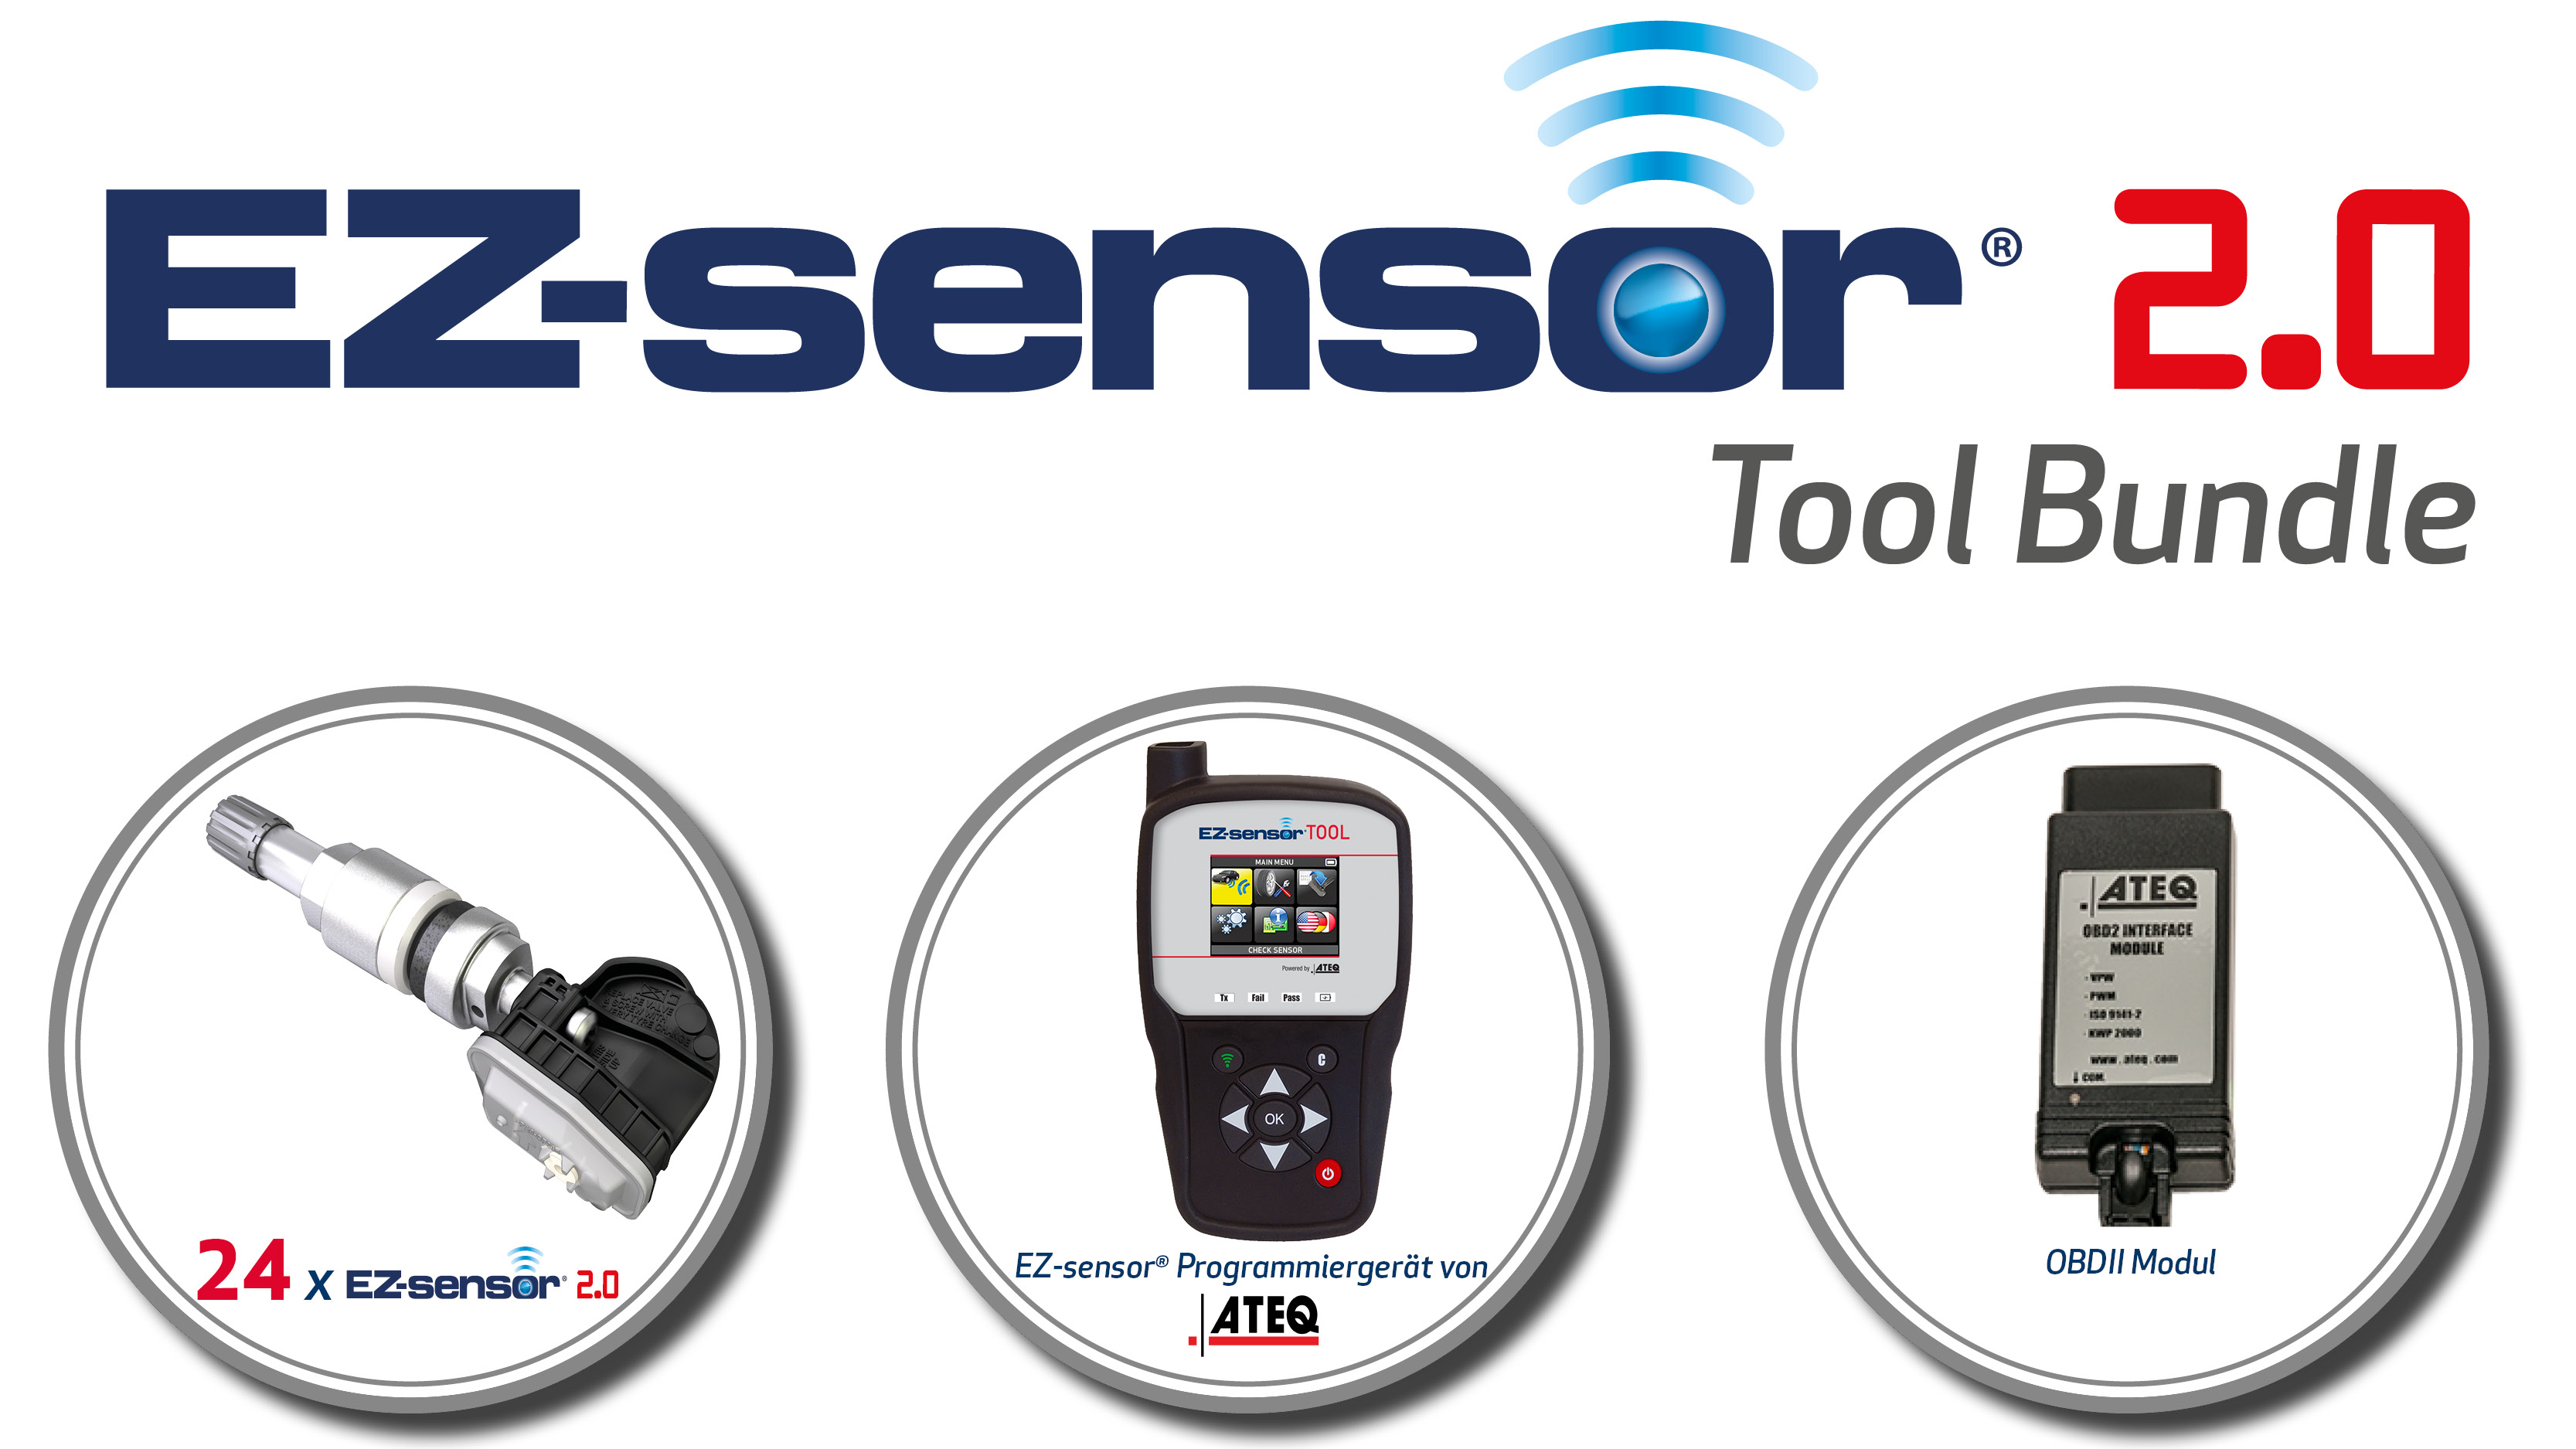 ATEQ VT46 programming tool and EZ-sensor bundle